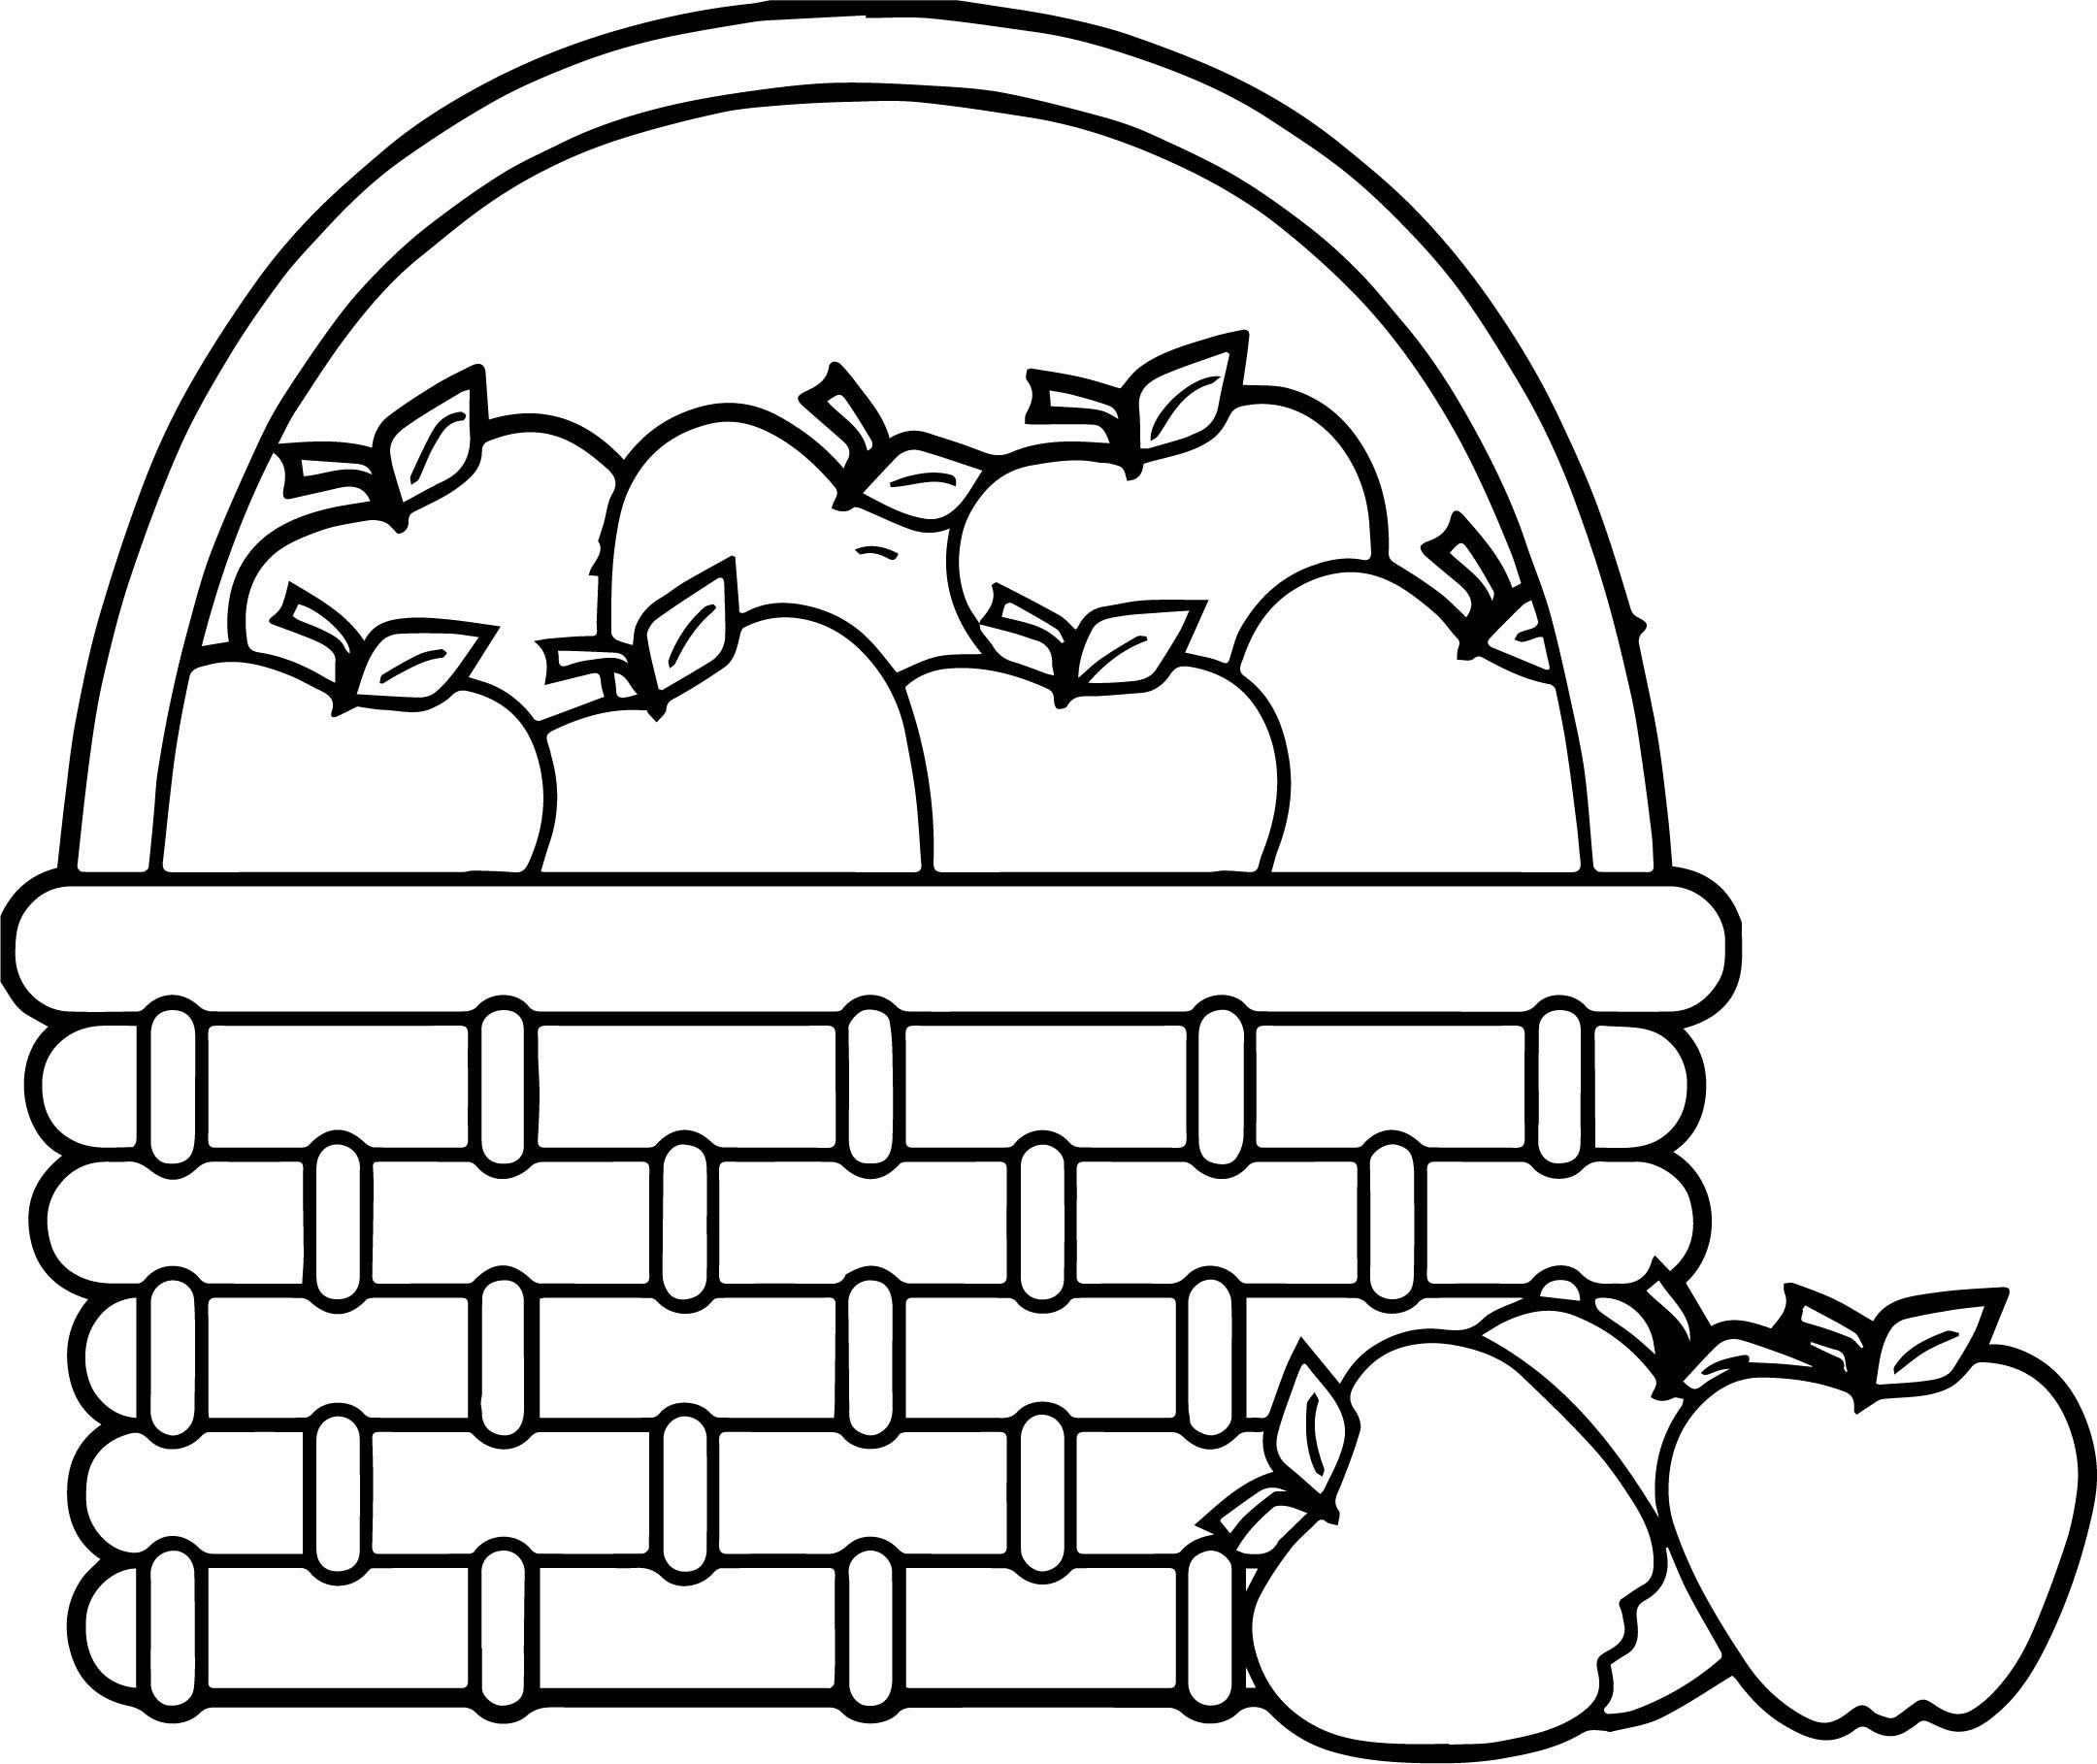 2161x1818 Apple Basket Coloring Page Coloring Page For Kids